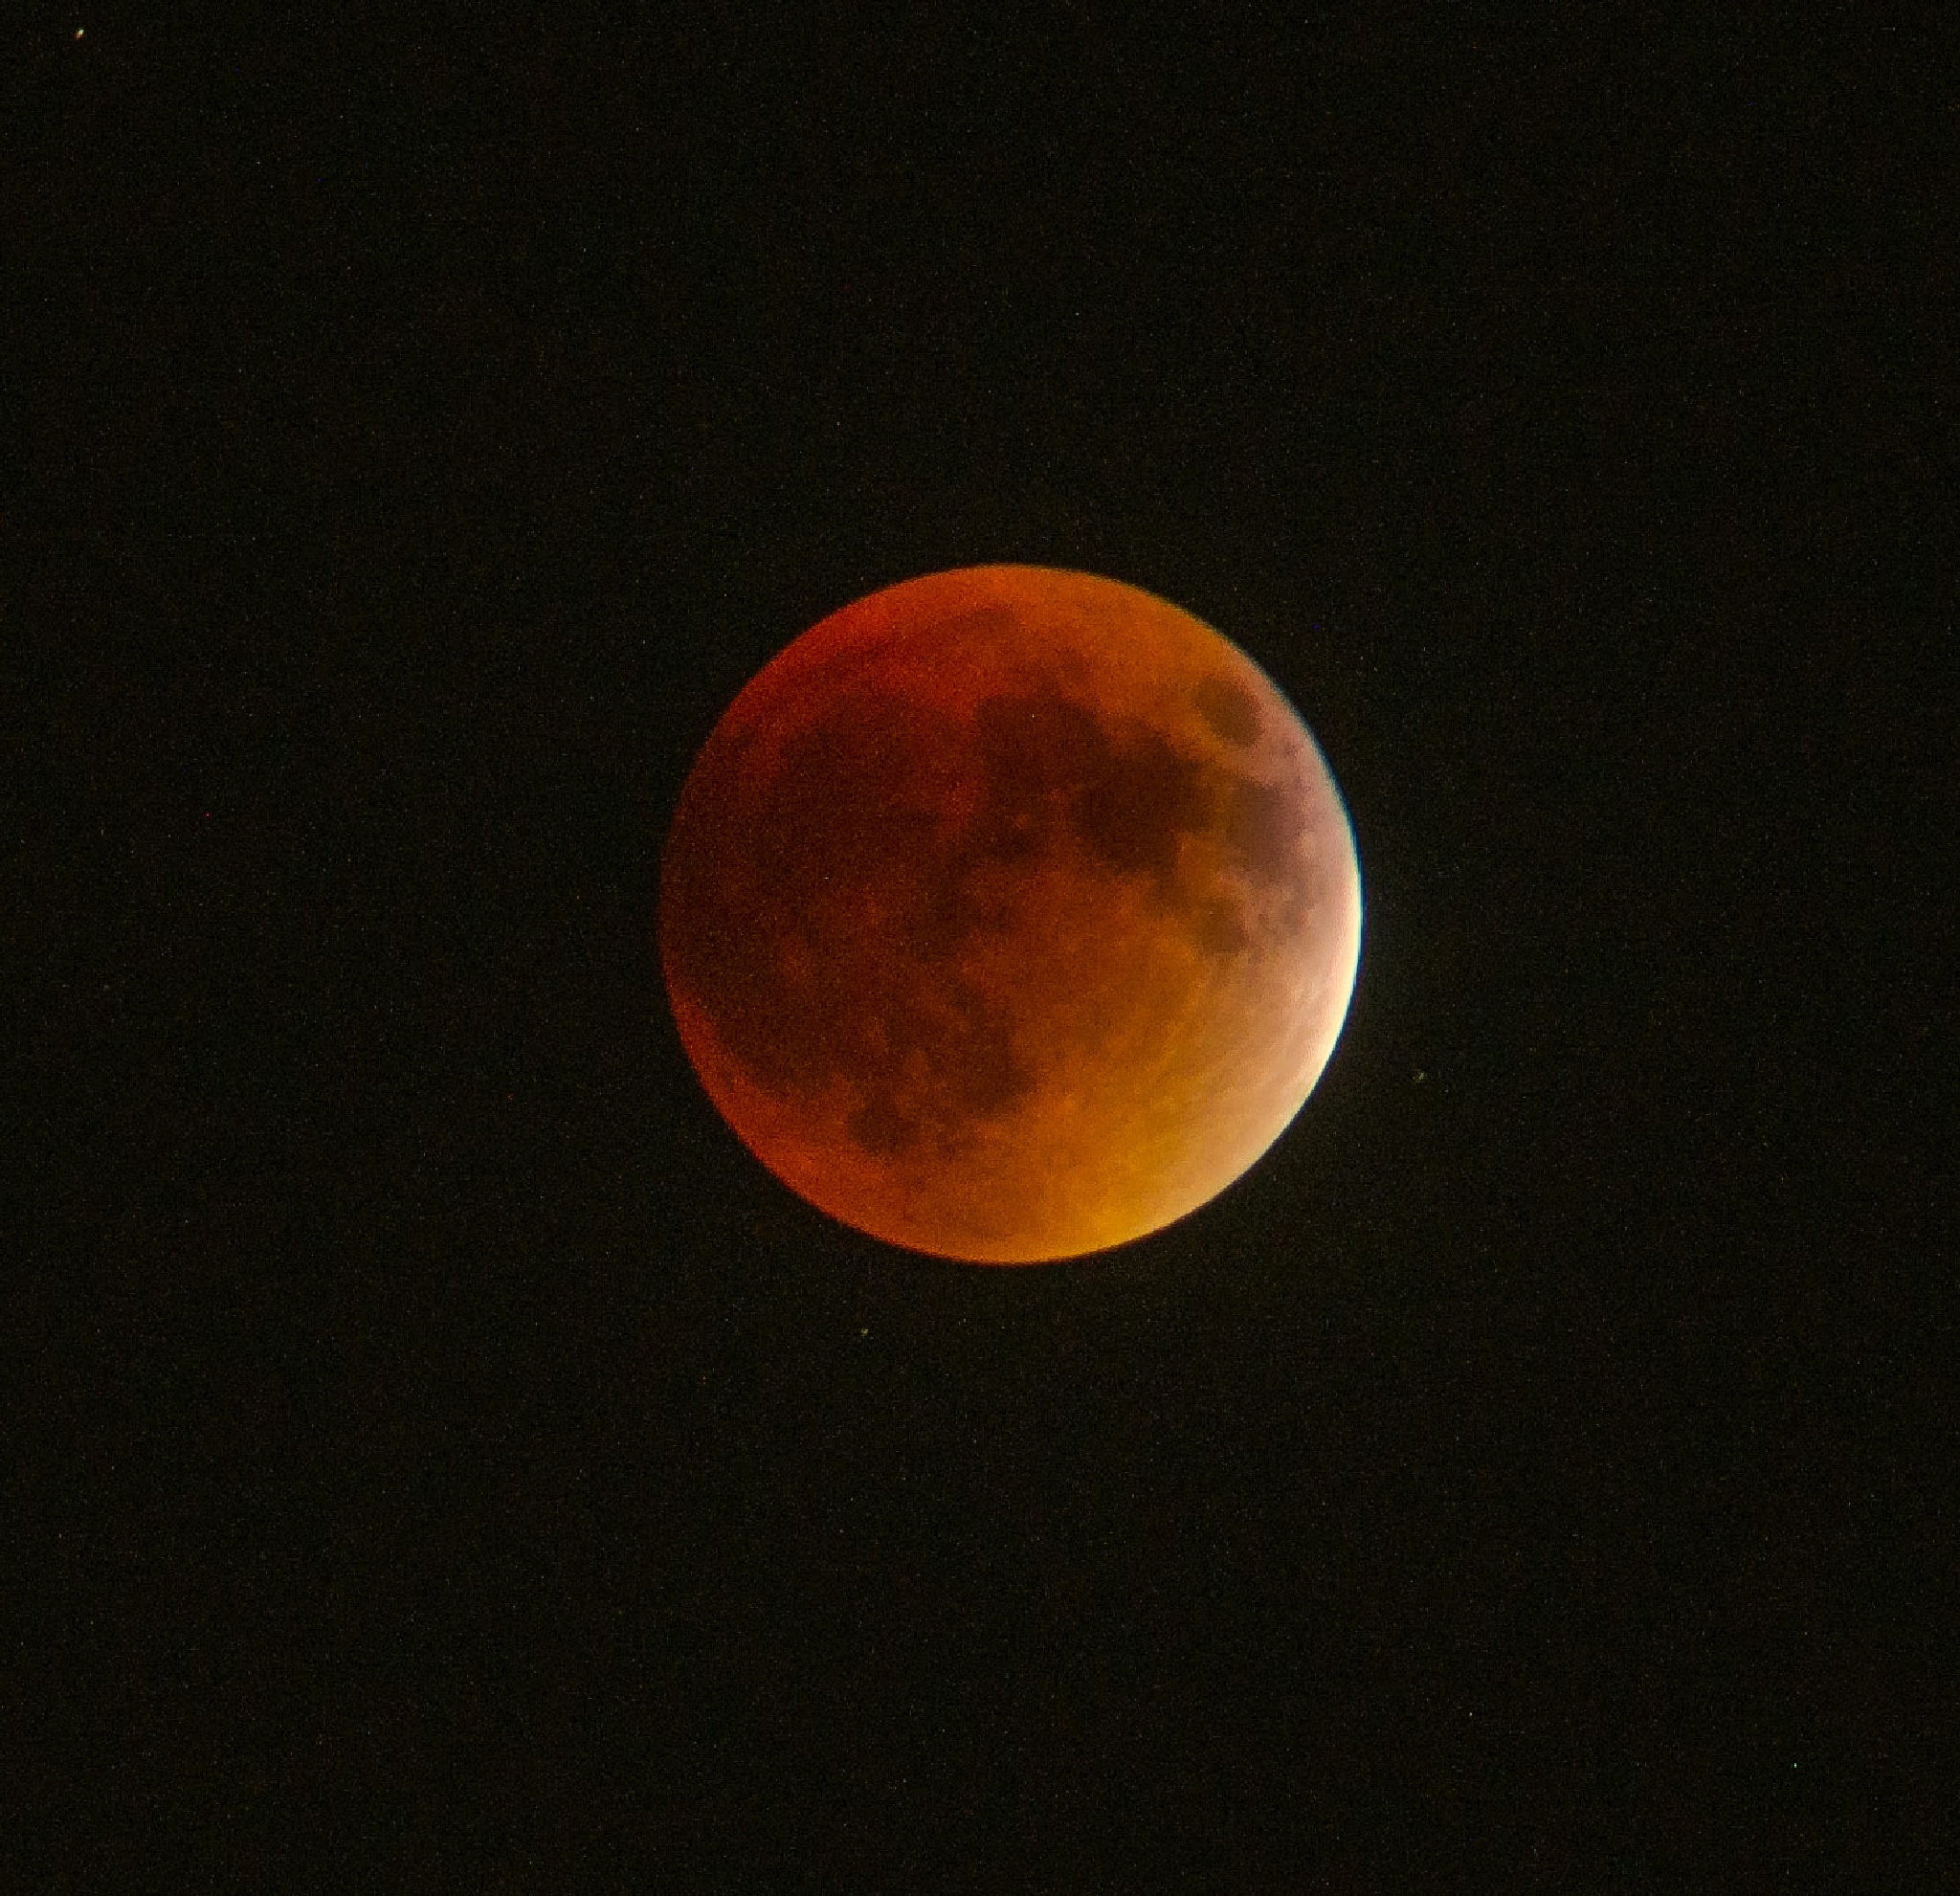 Blood moon Sept 2015 by richard.magers